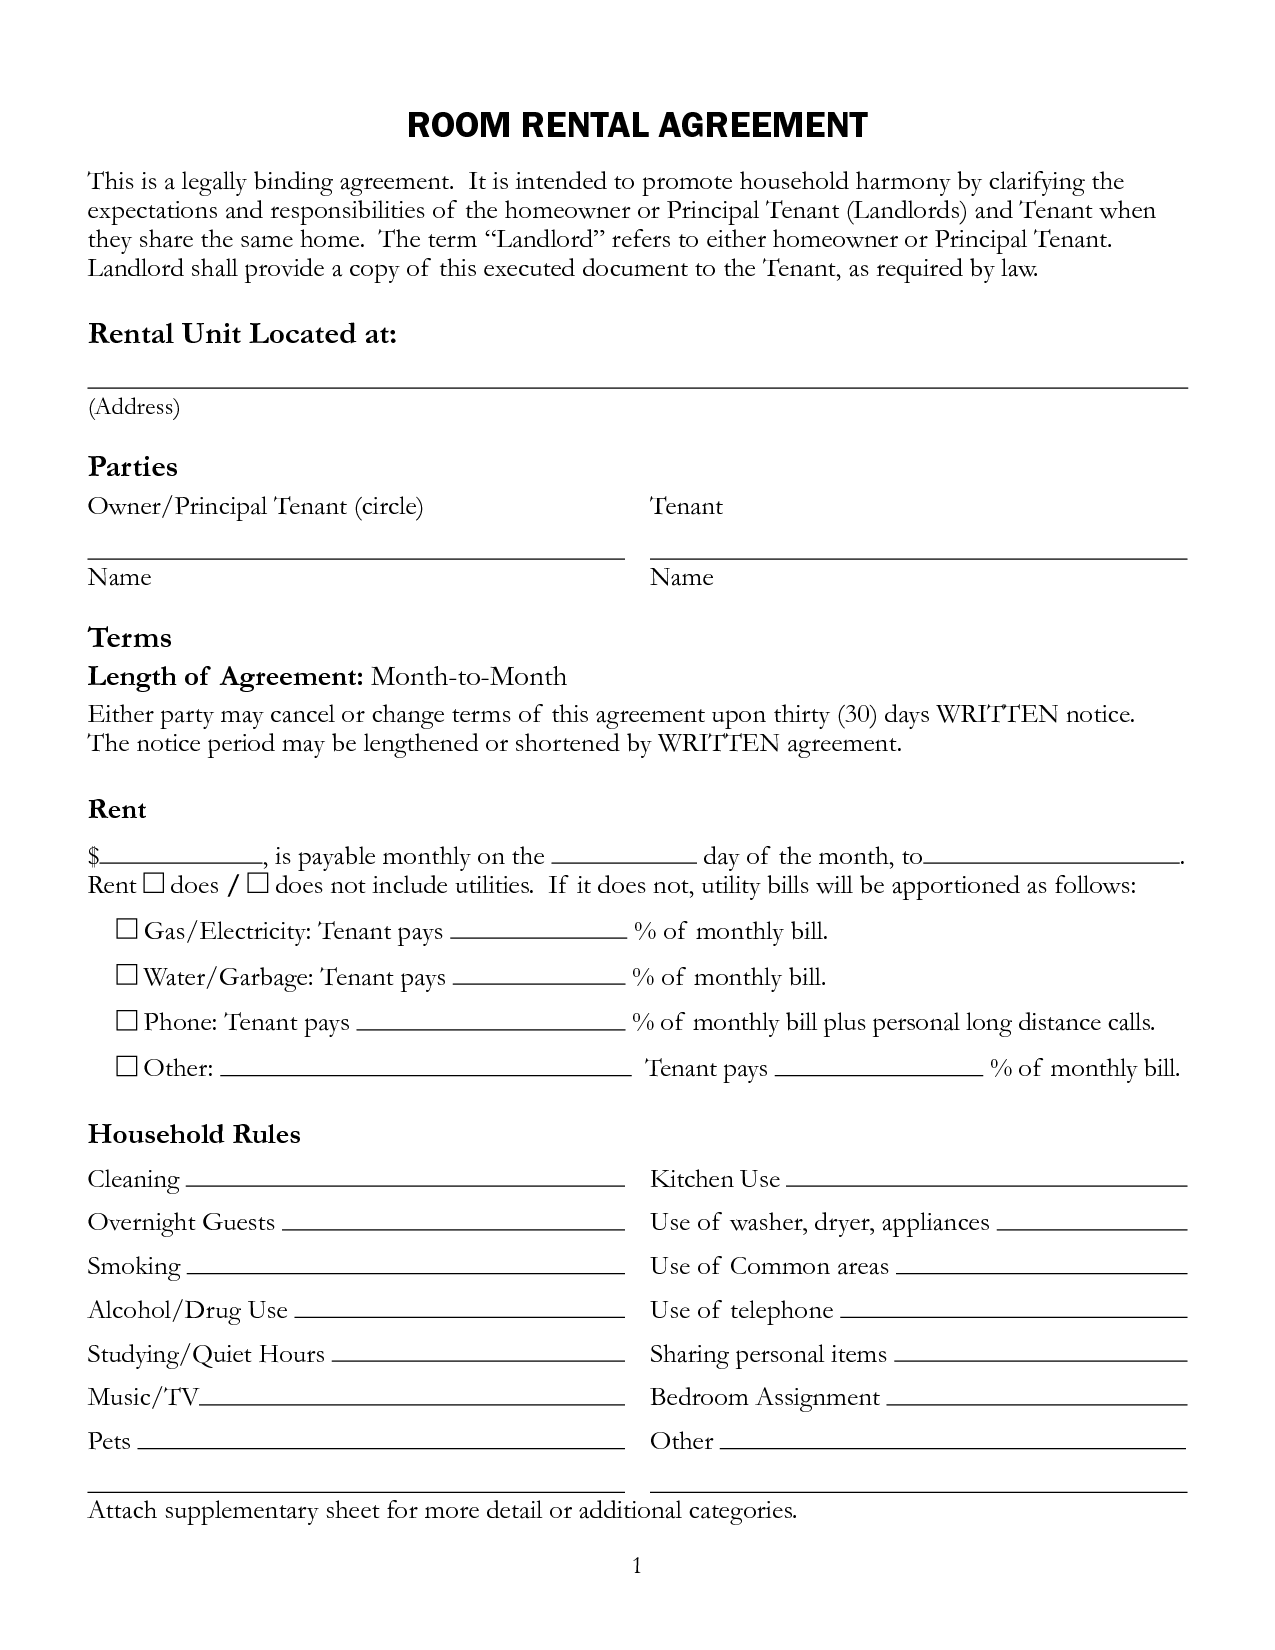 Free Rental Lease Agreement Forms Free Printable Rental Lease Agreement Form Template  Bagnas .